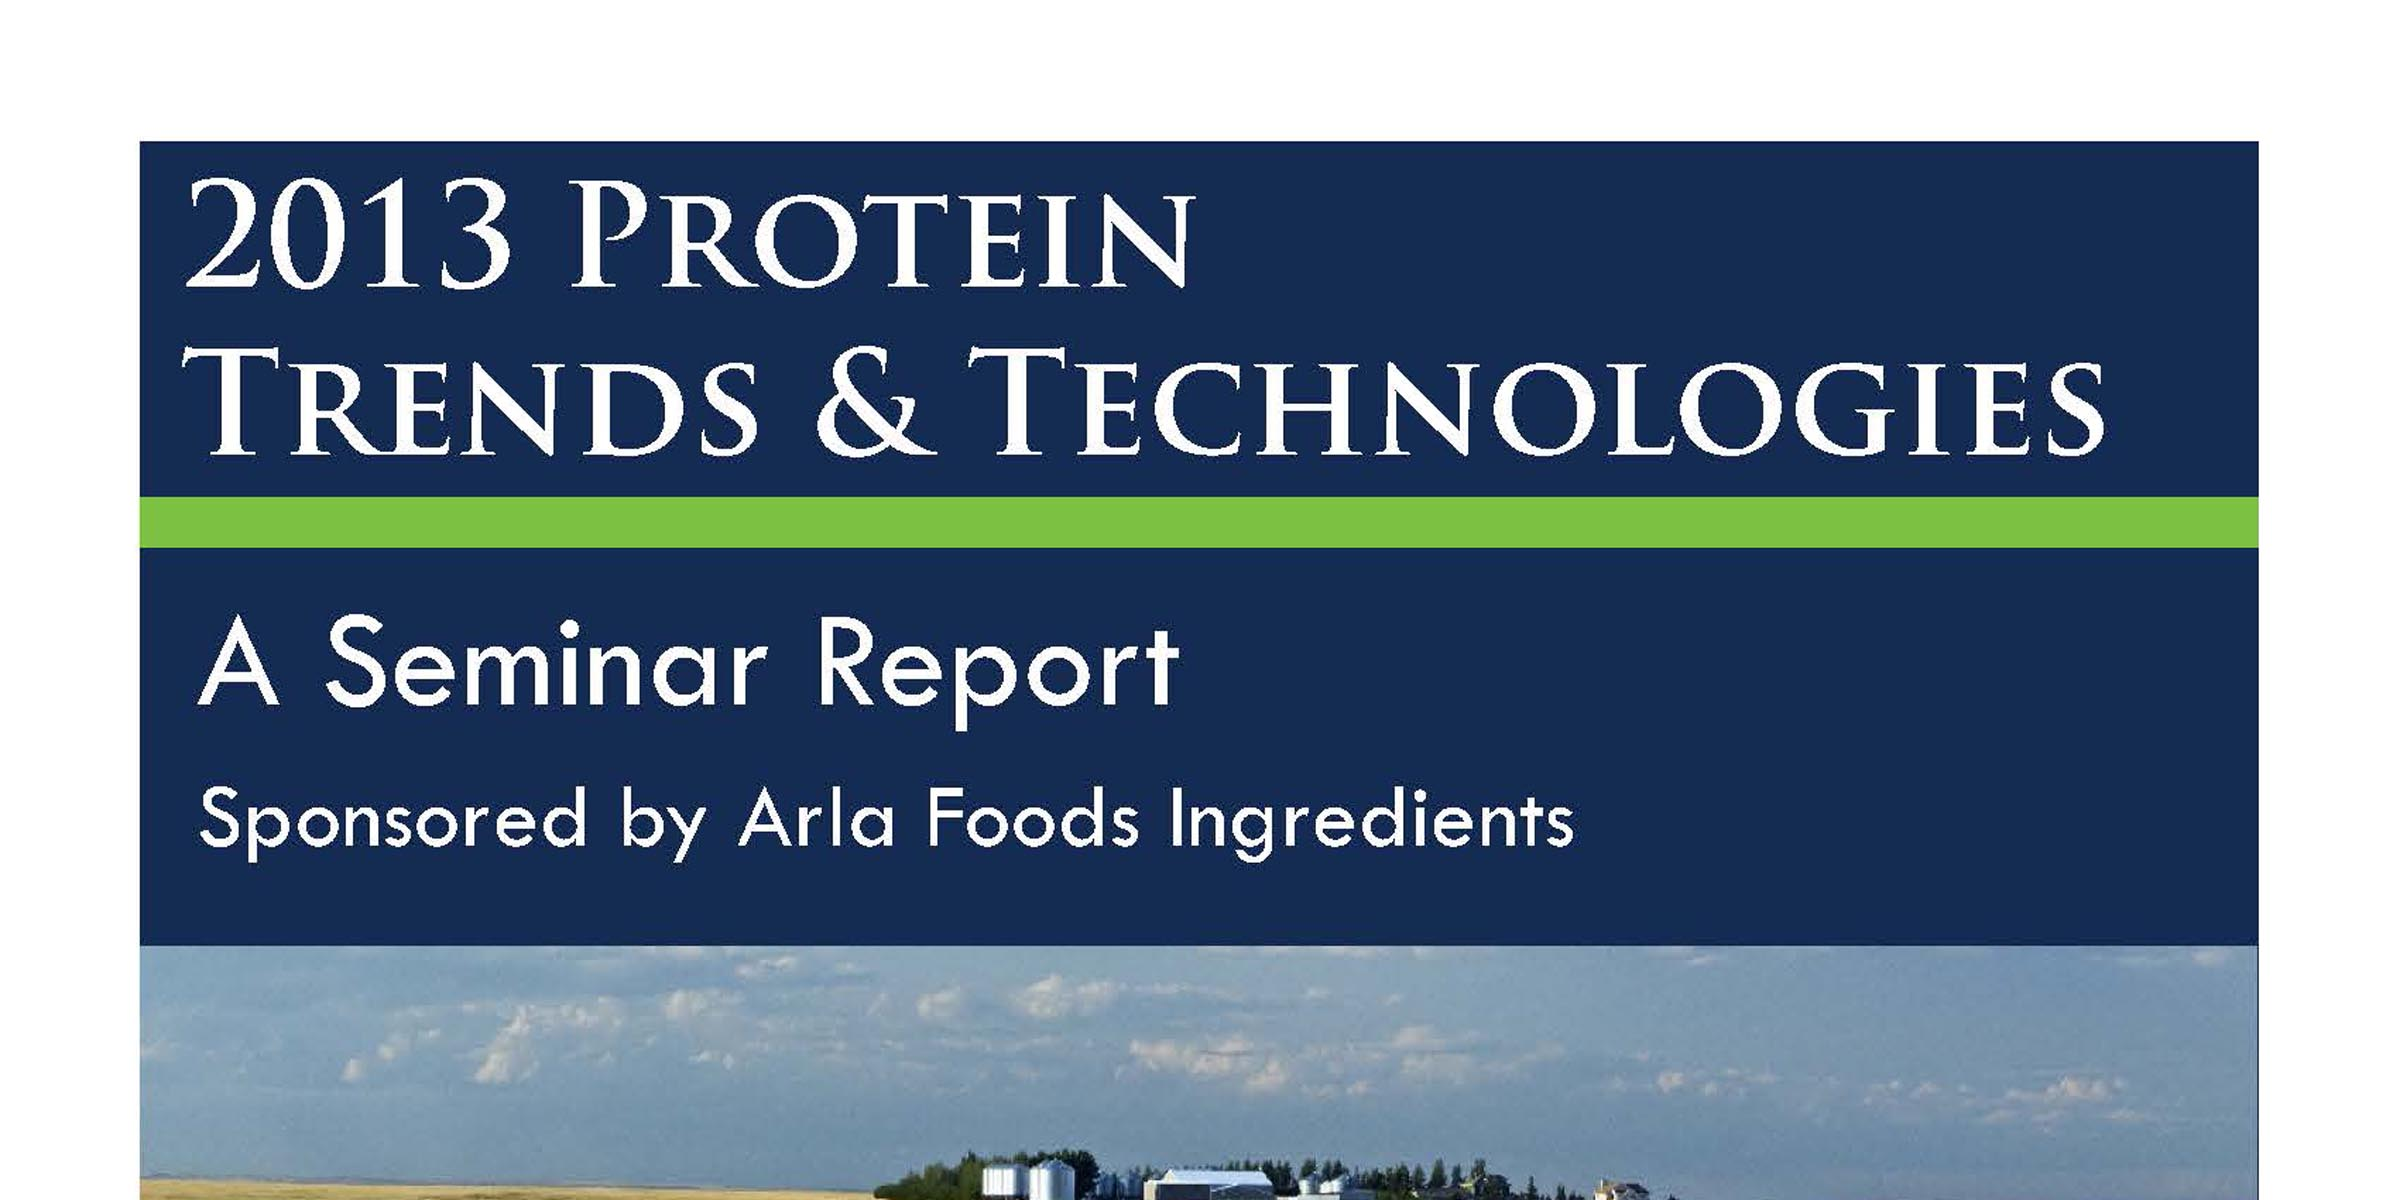 2013 Protein Trends & Technologies Post Conference Magazine